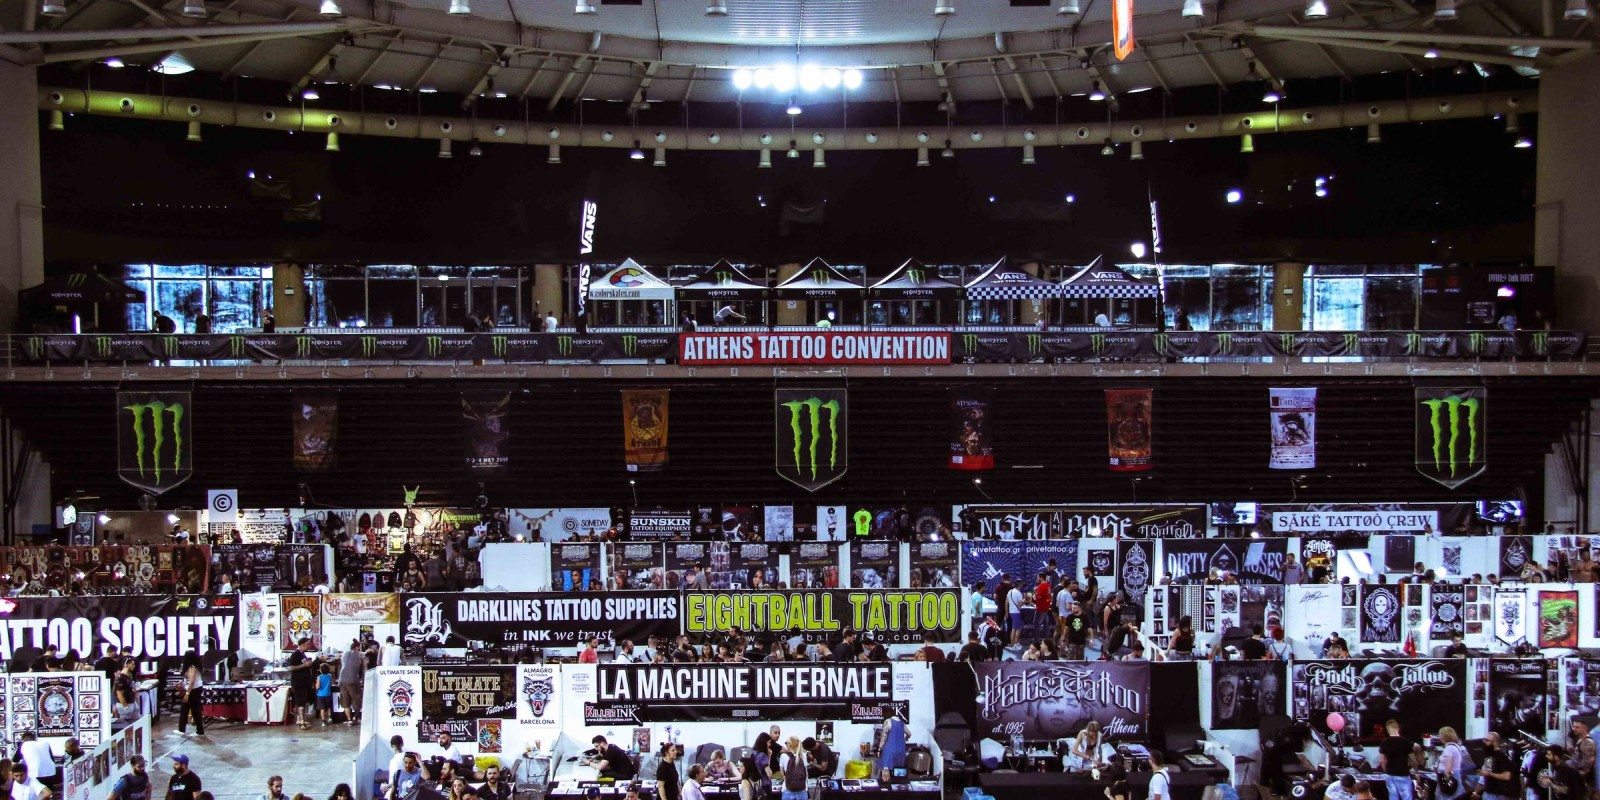 Photos from 11th Athens International Tattoo Convention fuelled by Monster Energy.